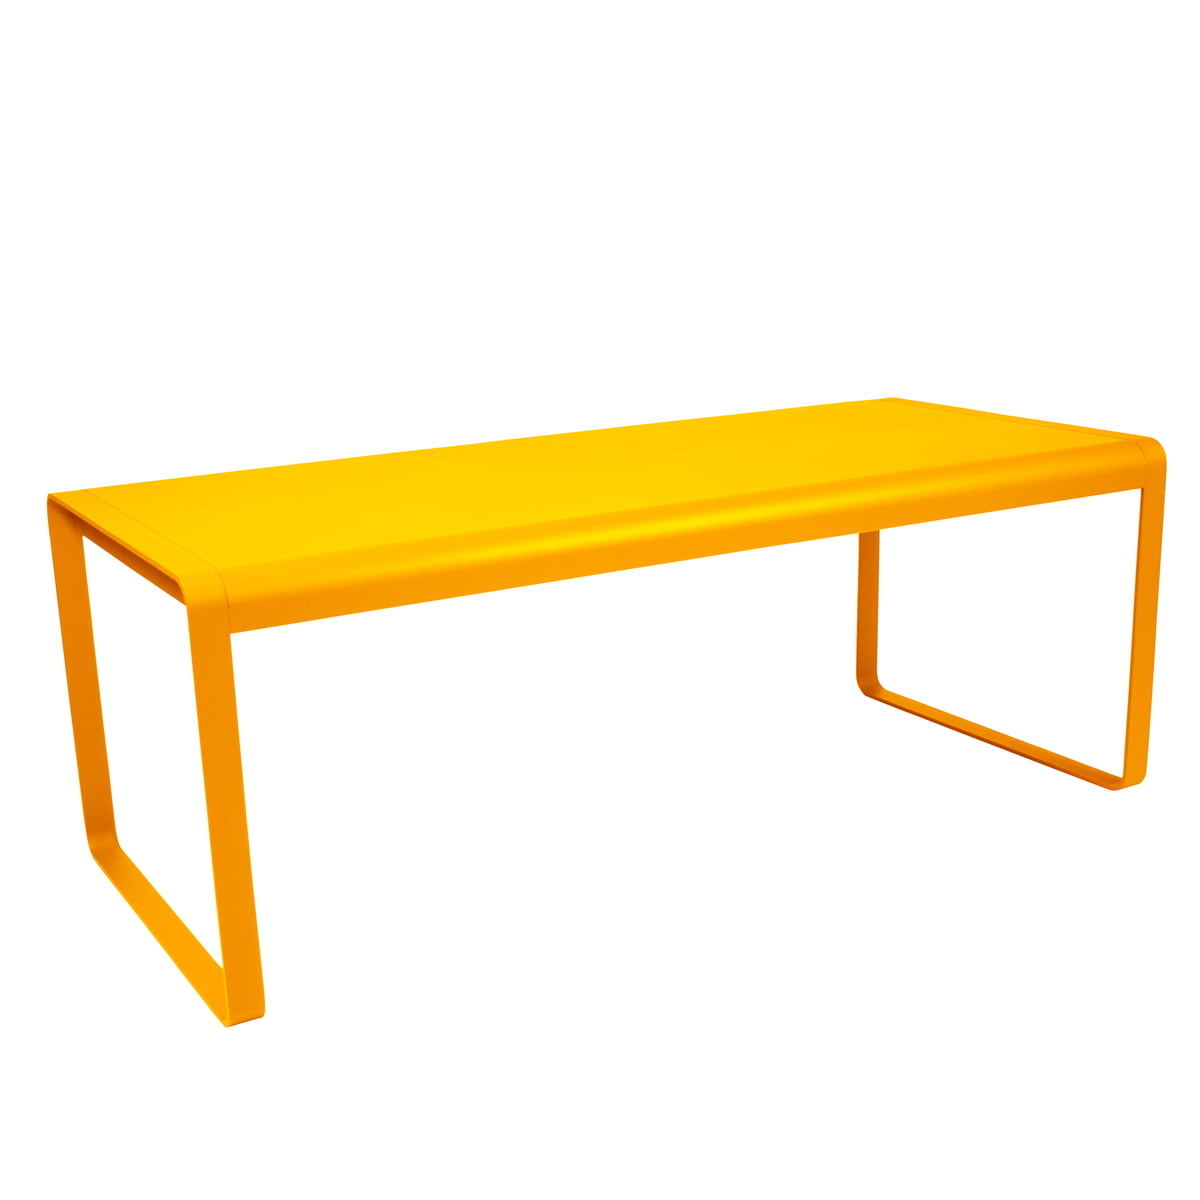 The Bellevie Table By Fermob In The Shop